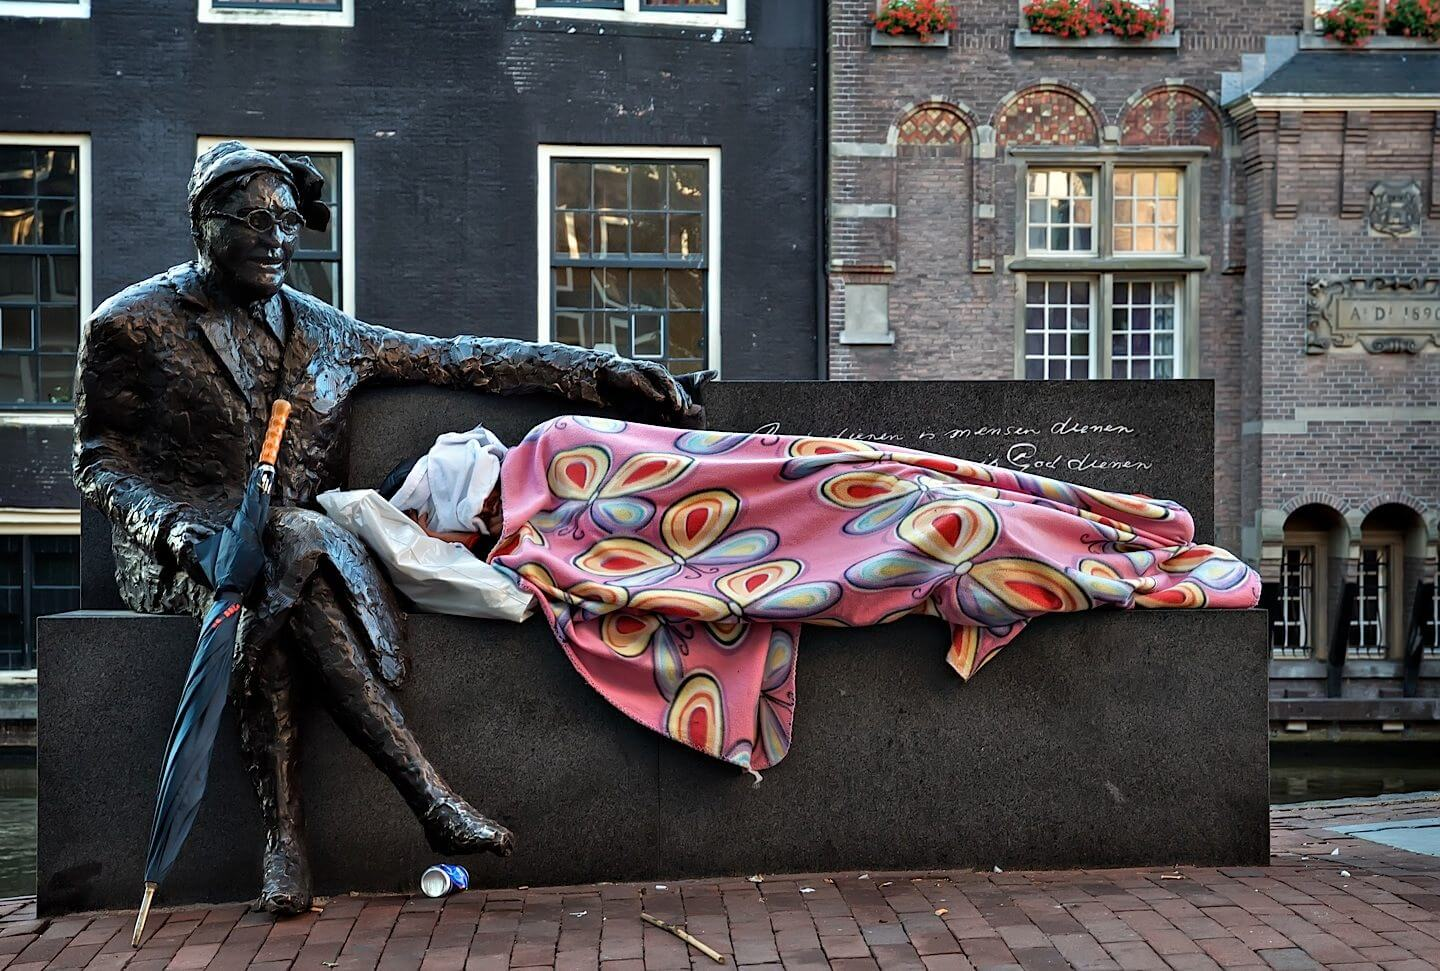 Homeless man sleeping on a bench in the Red Light District in Amsterdam next to a statue of Major Alida Bosshardt